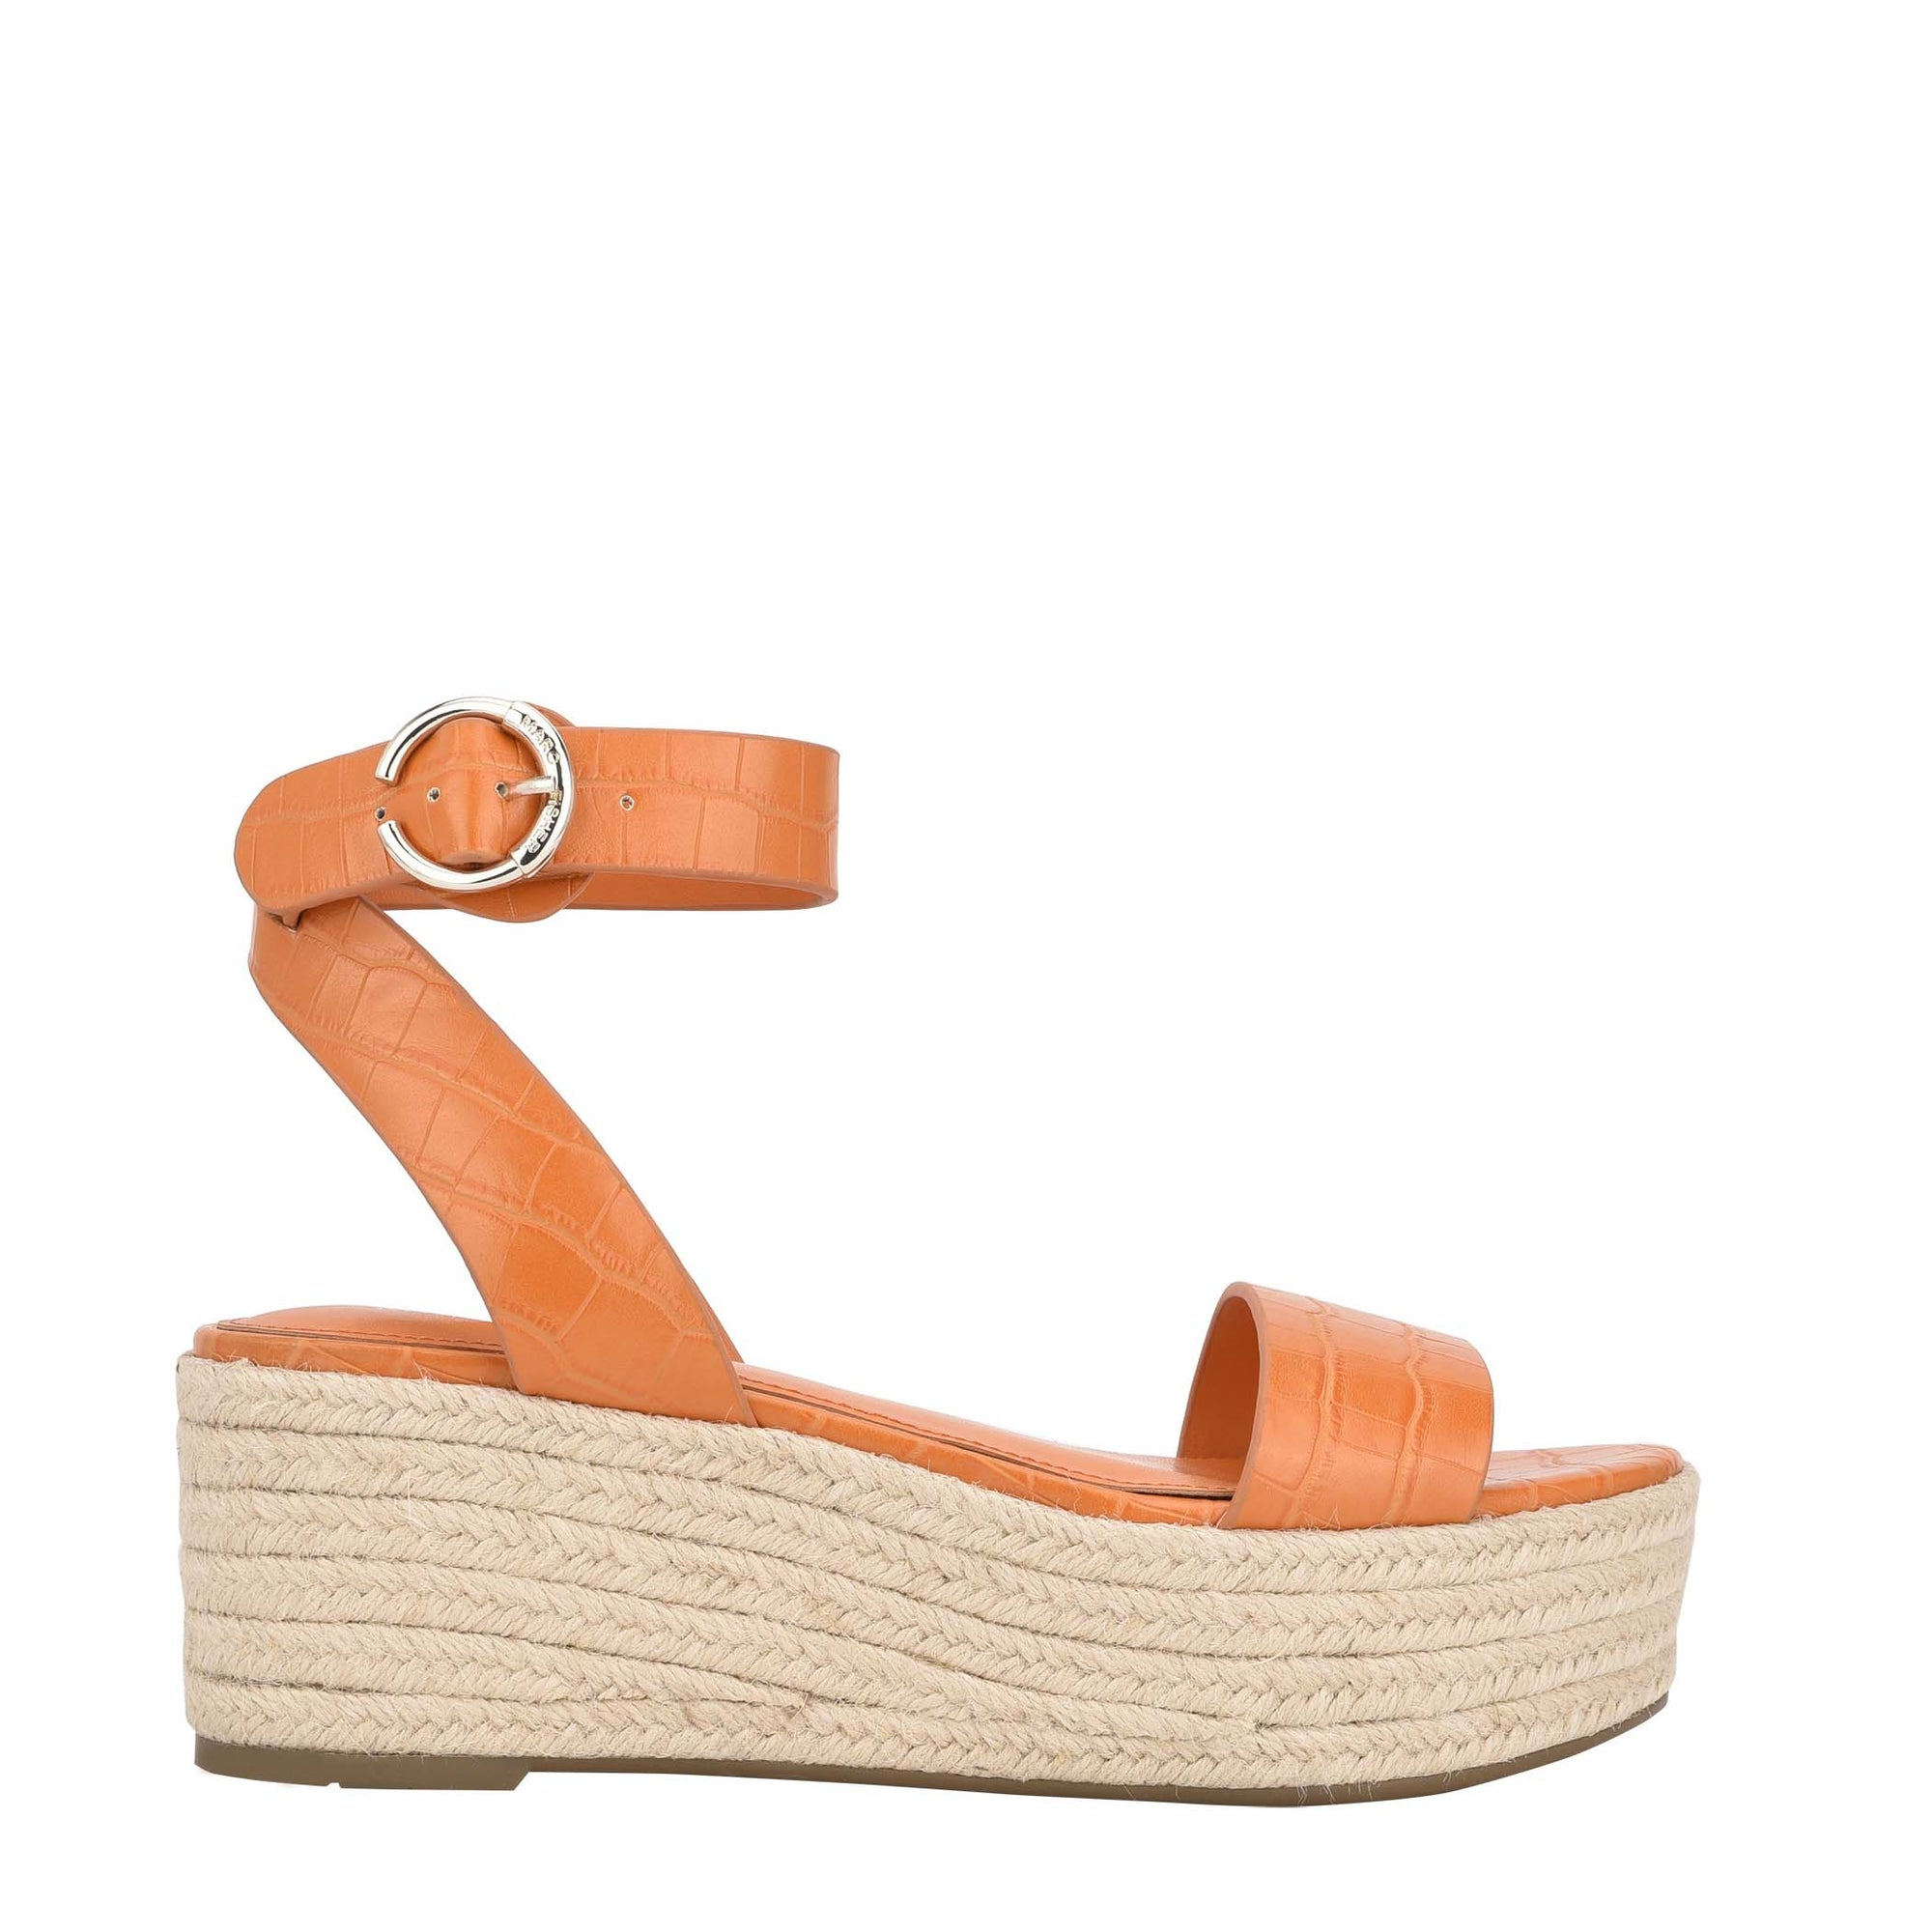 jenia-espadrille-sandal-in-orange-croco-embossed-print